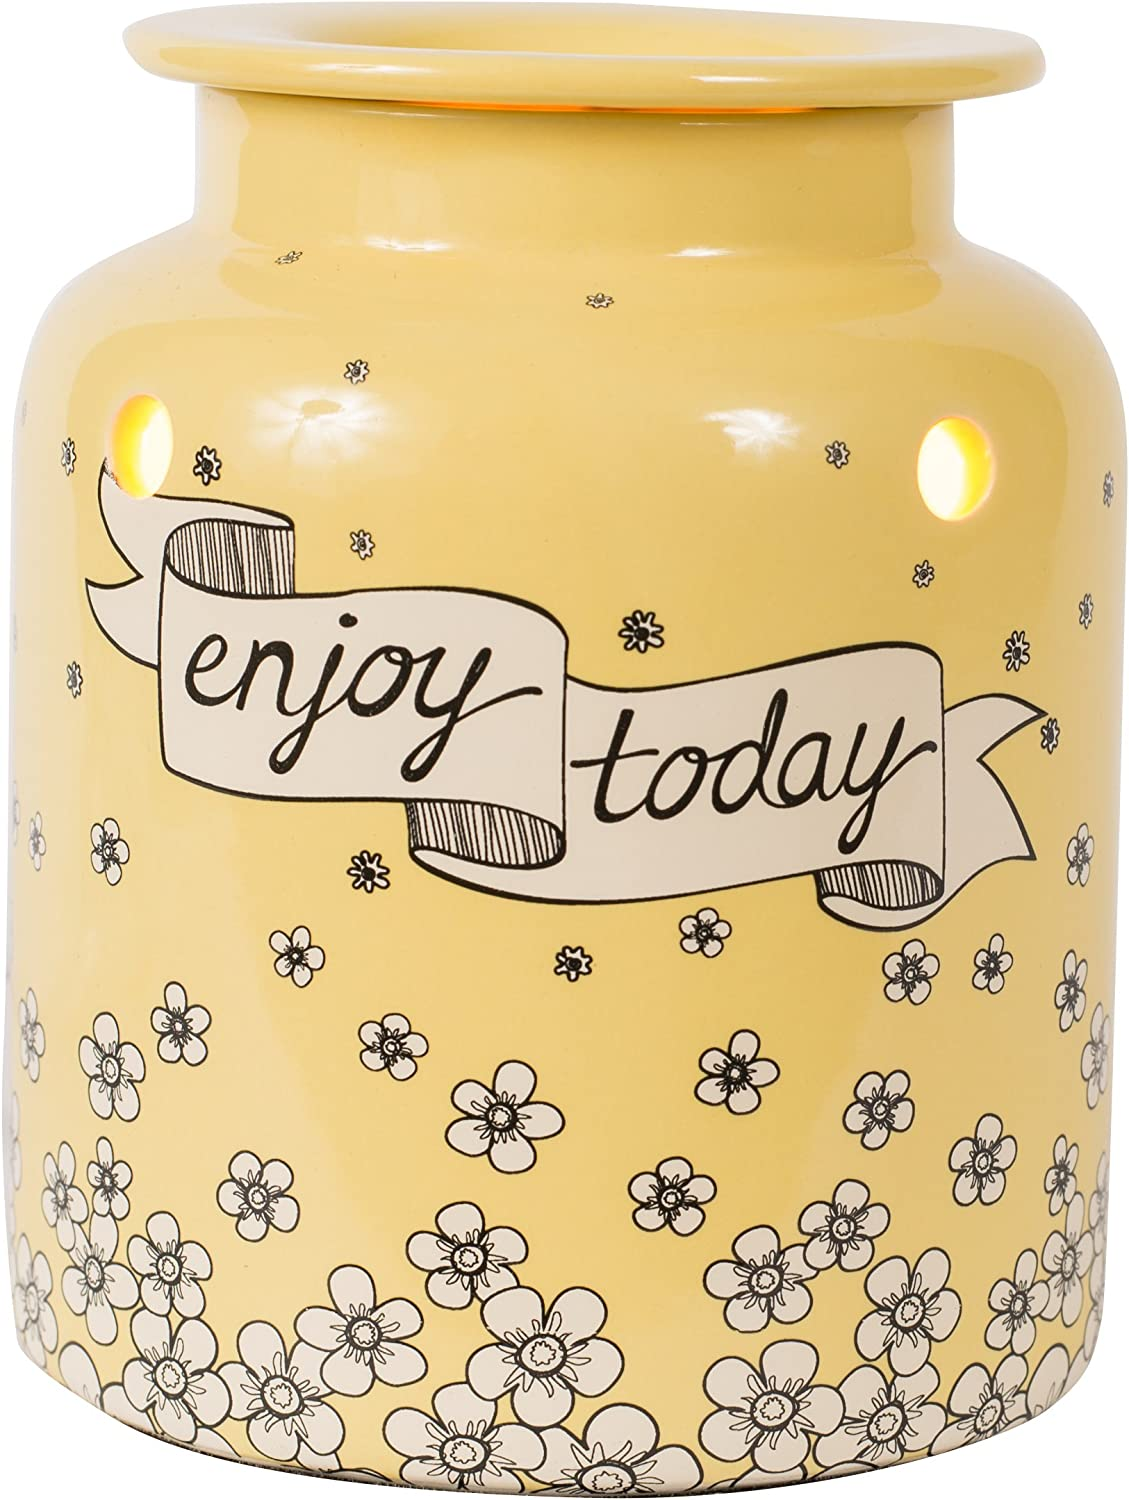 Scentsationals Enjoy Today Scented Wax Warmer - Happy Flower Fragrance Wax Cube Melter - Electric Wickless Wax Burner Home Air Freshener (Yellow)